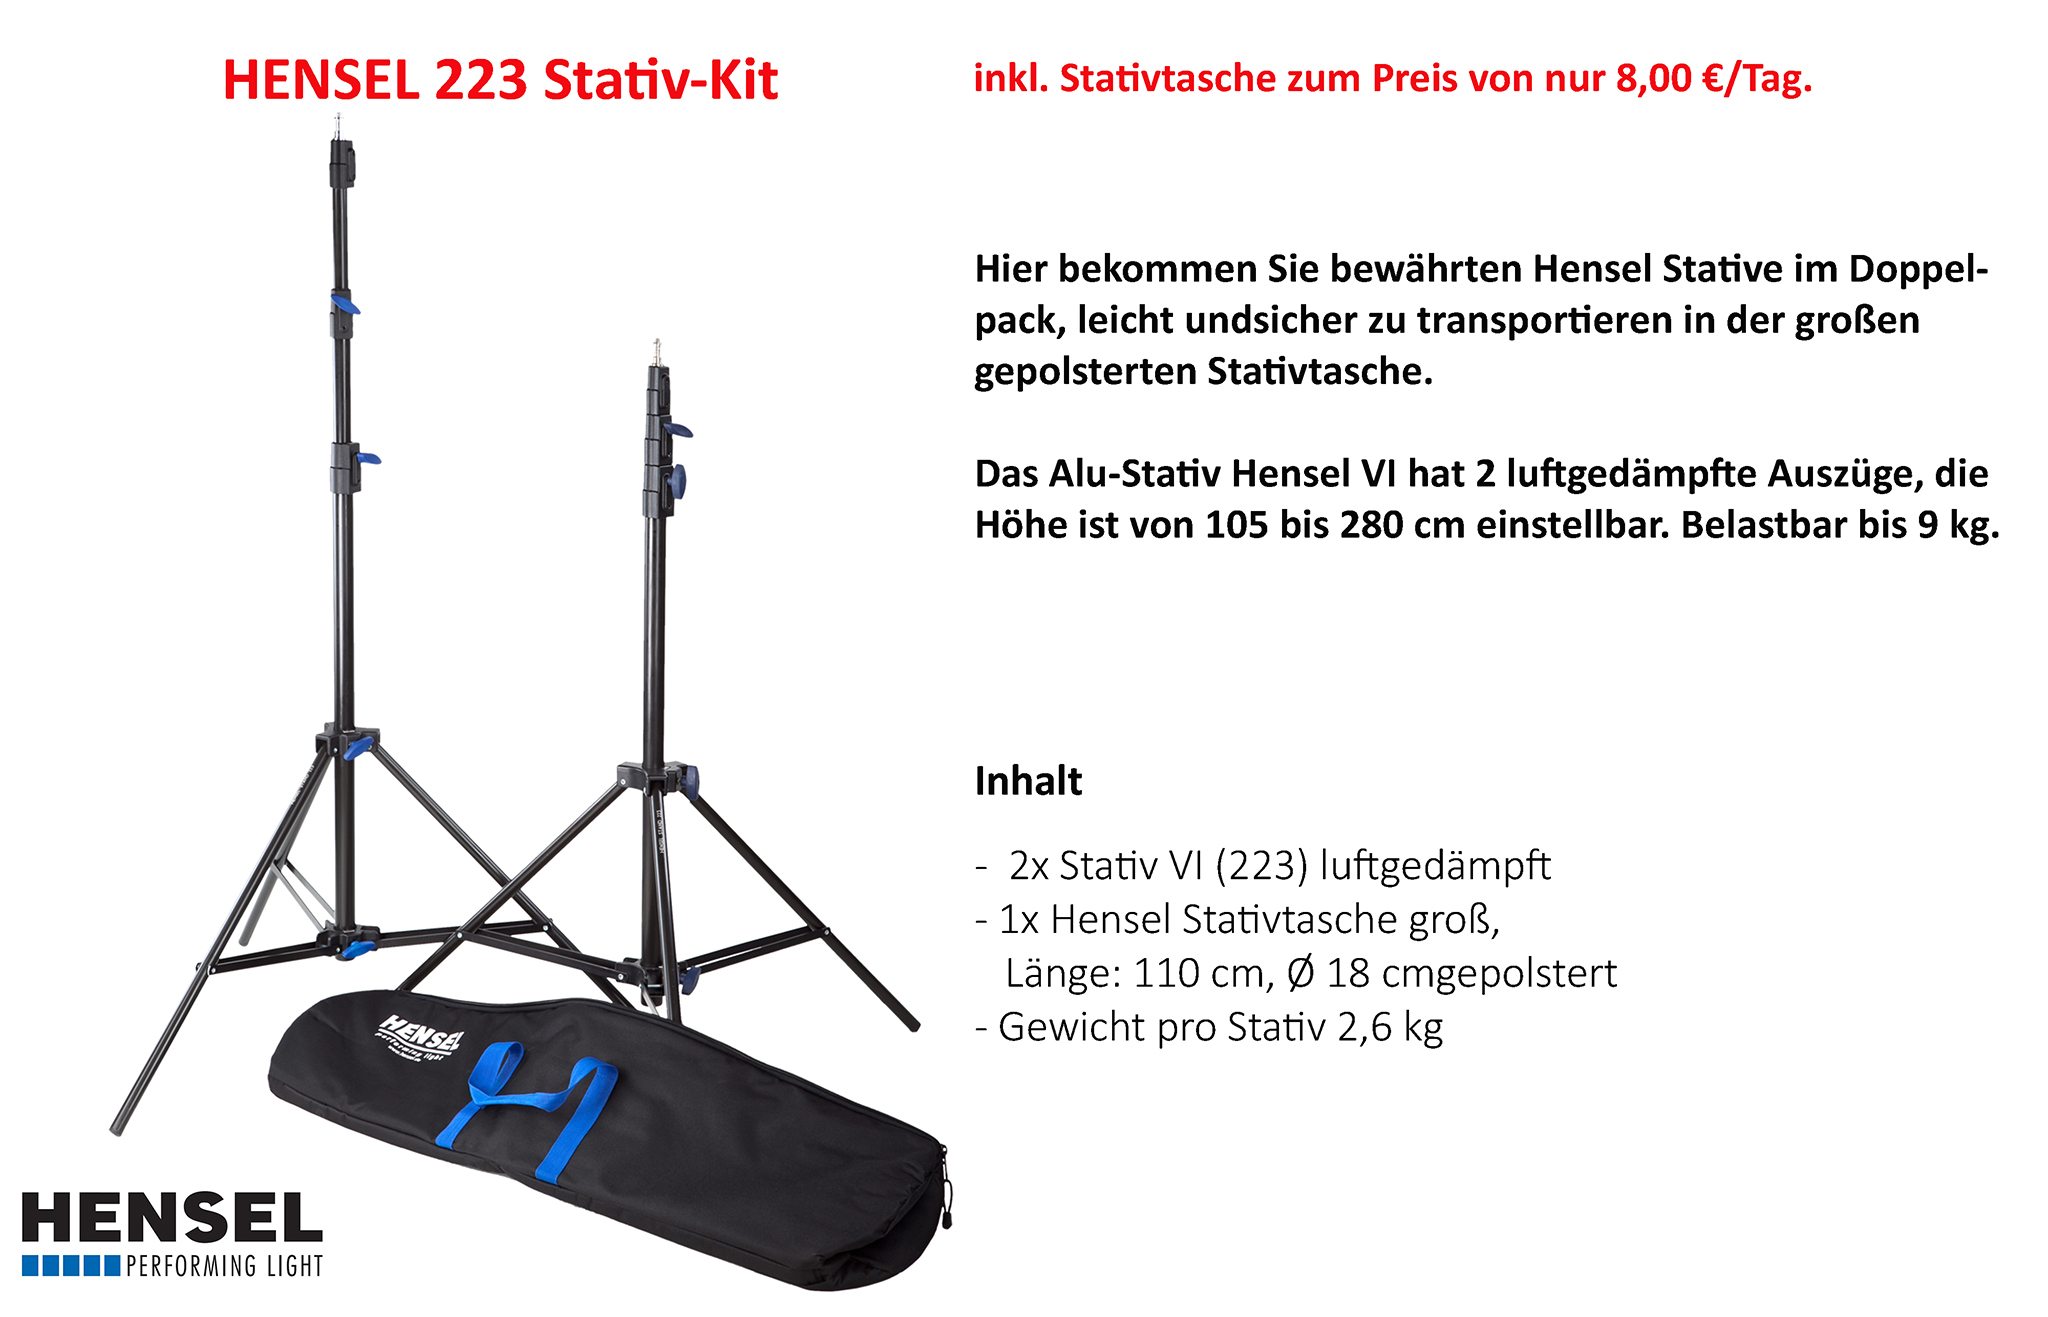 Hensel 223 Stativ-Kit